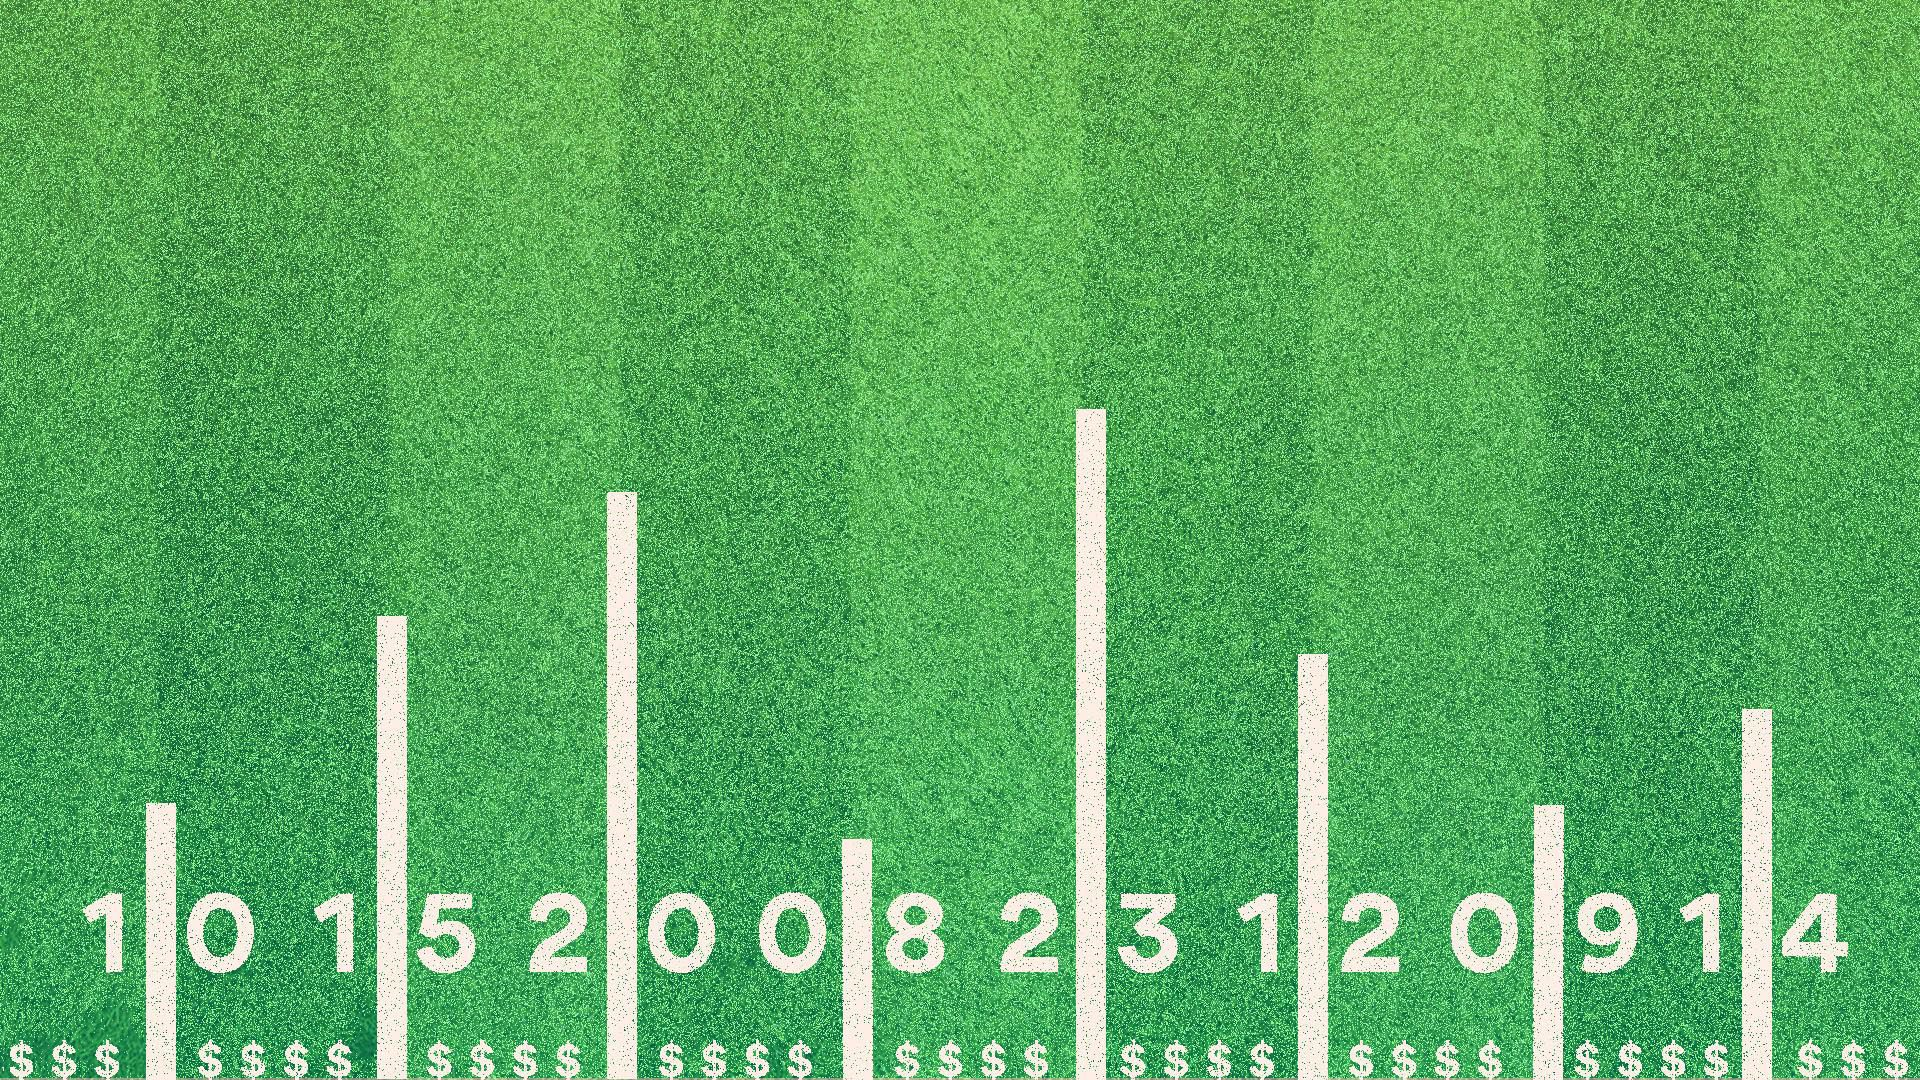 Football lines represented as data